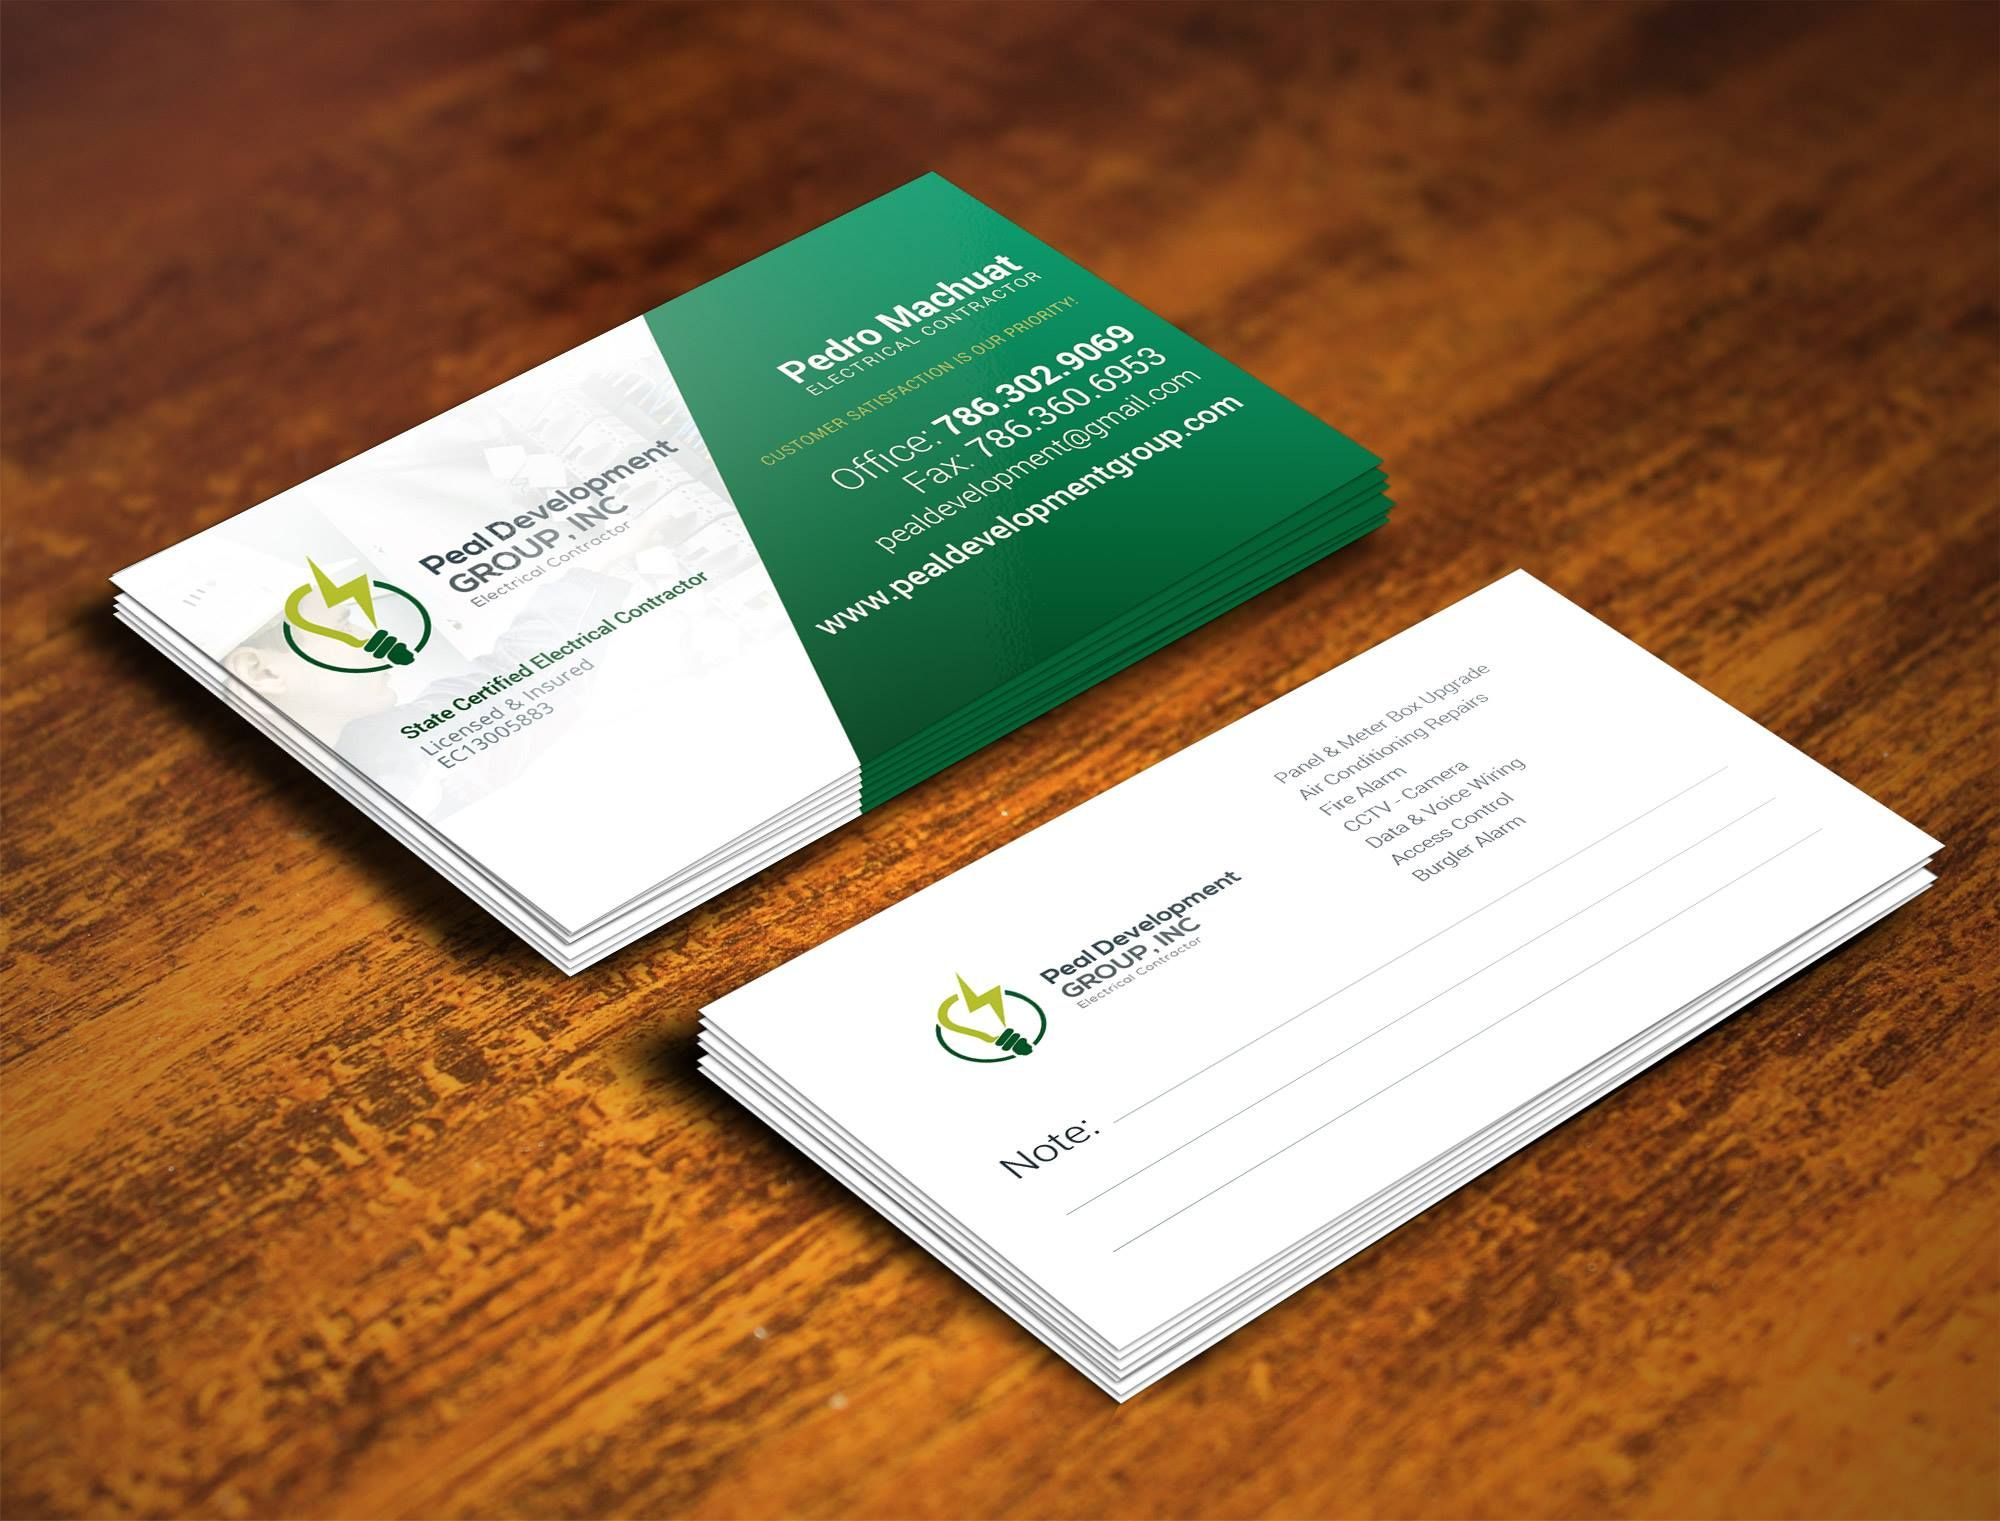 Electrical Business Cards Design by Blue Rhino Media - Call: 305 204 ...